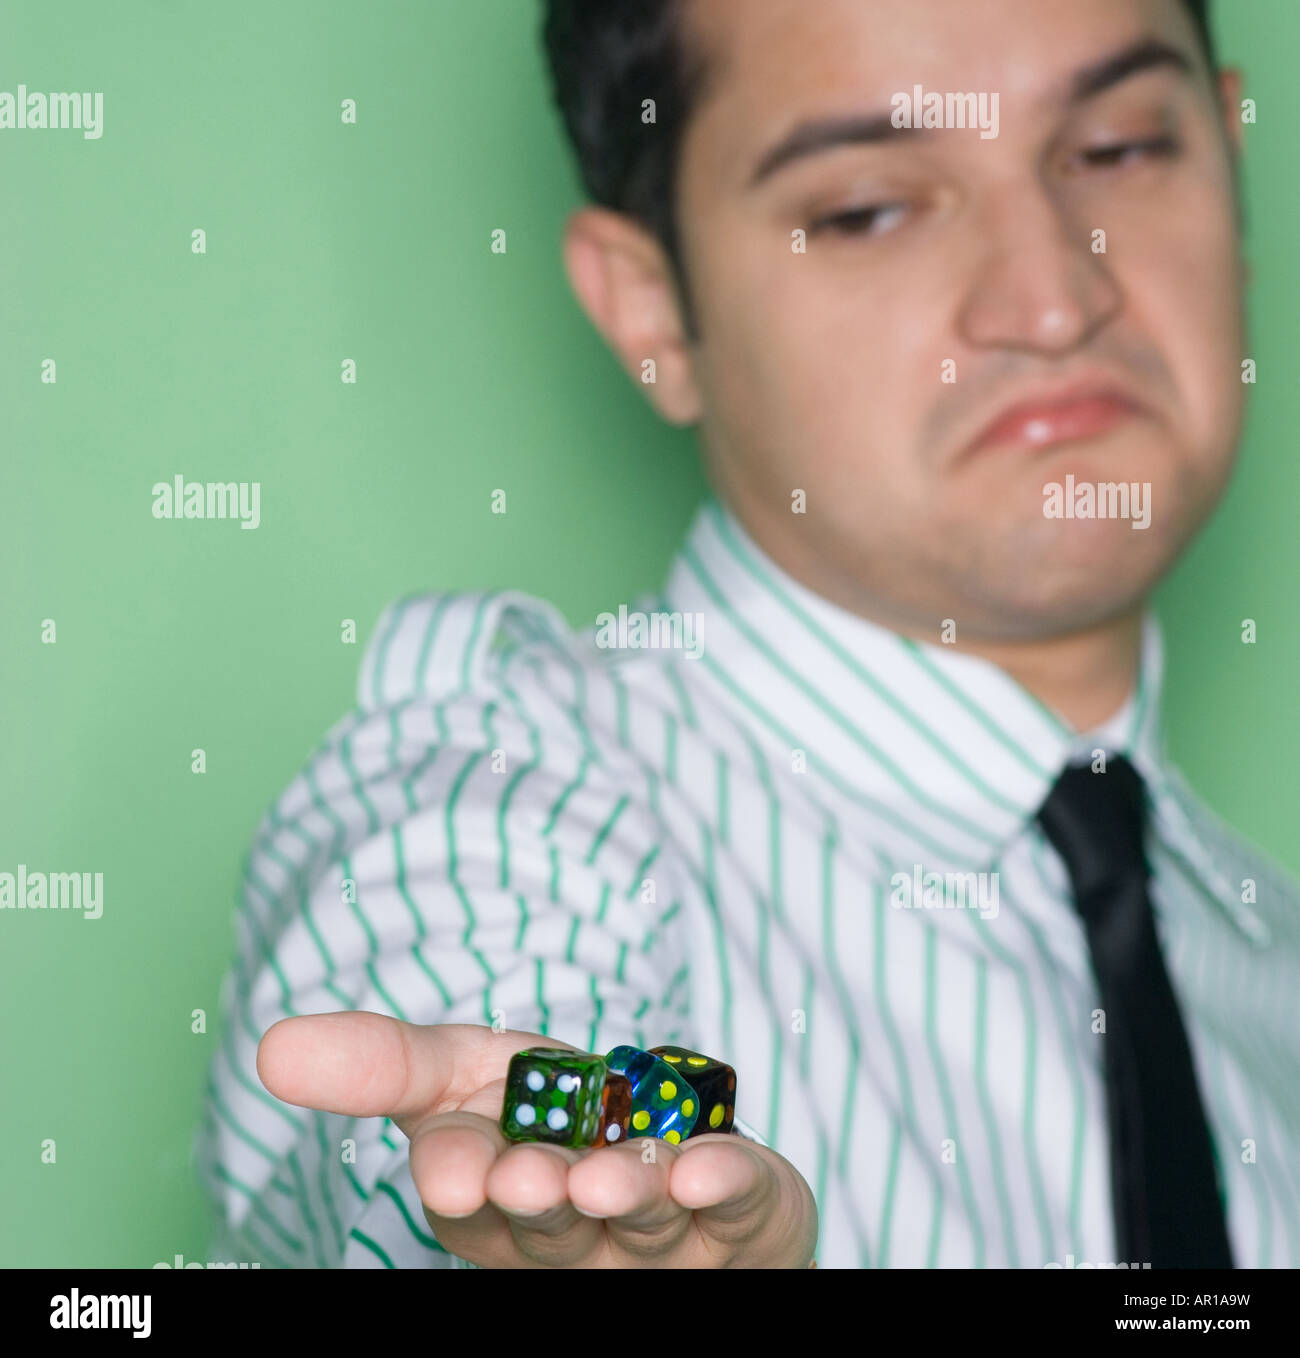 Young man showing group of dice with a sad expression - Stock Image